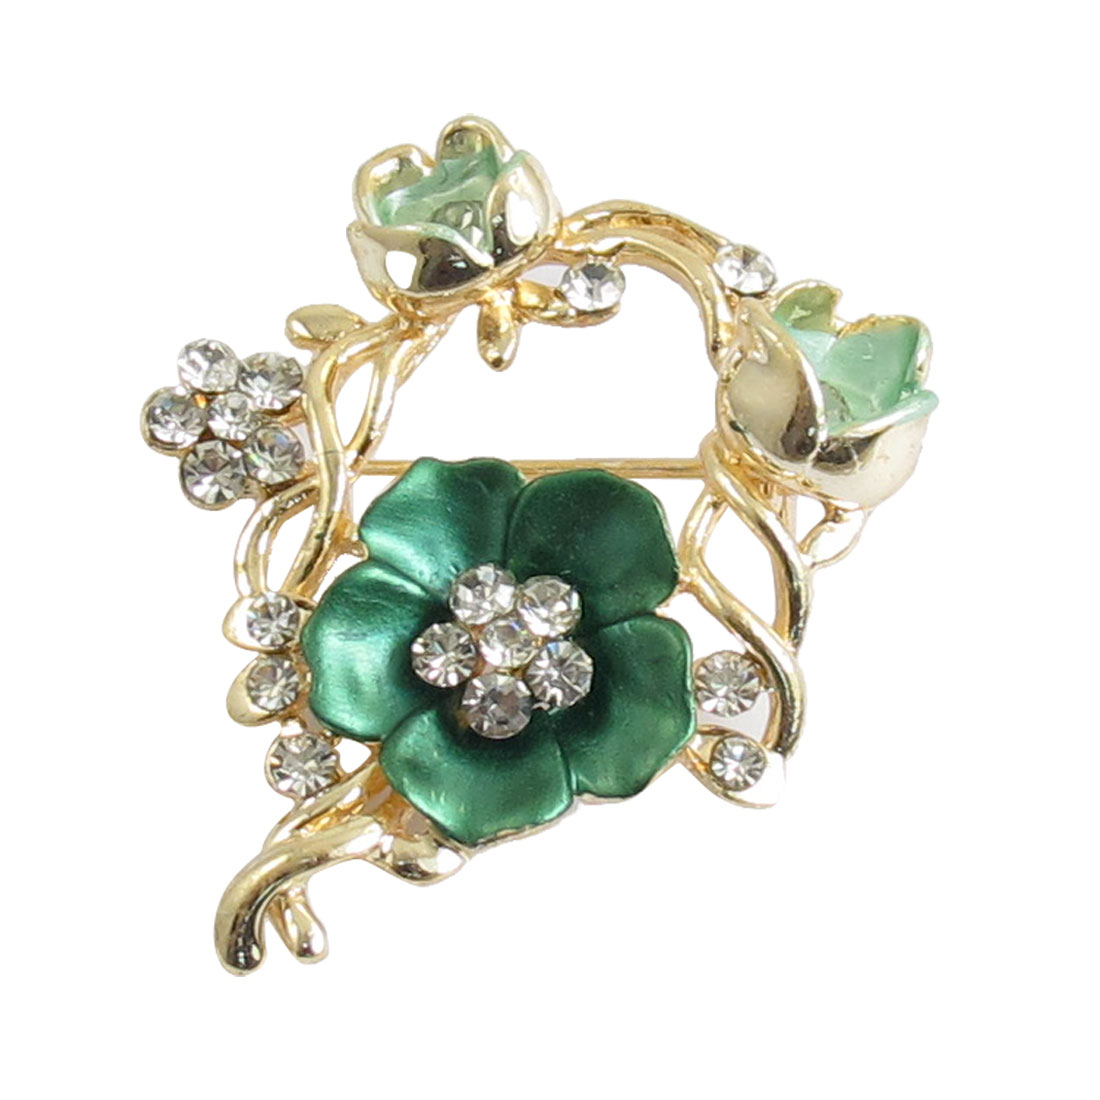 Dress Ornament Green Flower Rhinestone Accent Alloy Brooch Pin